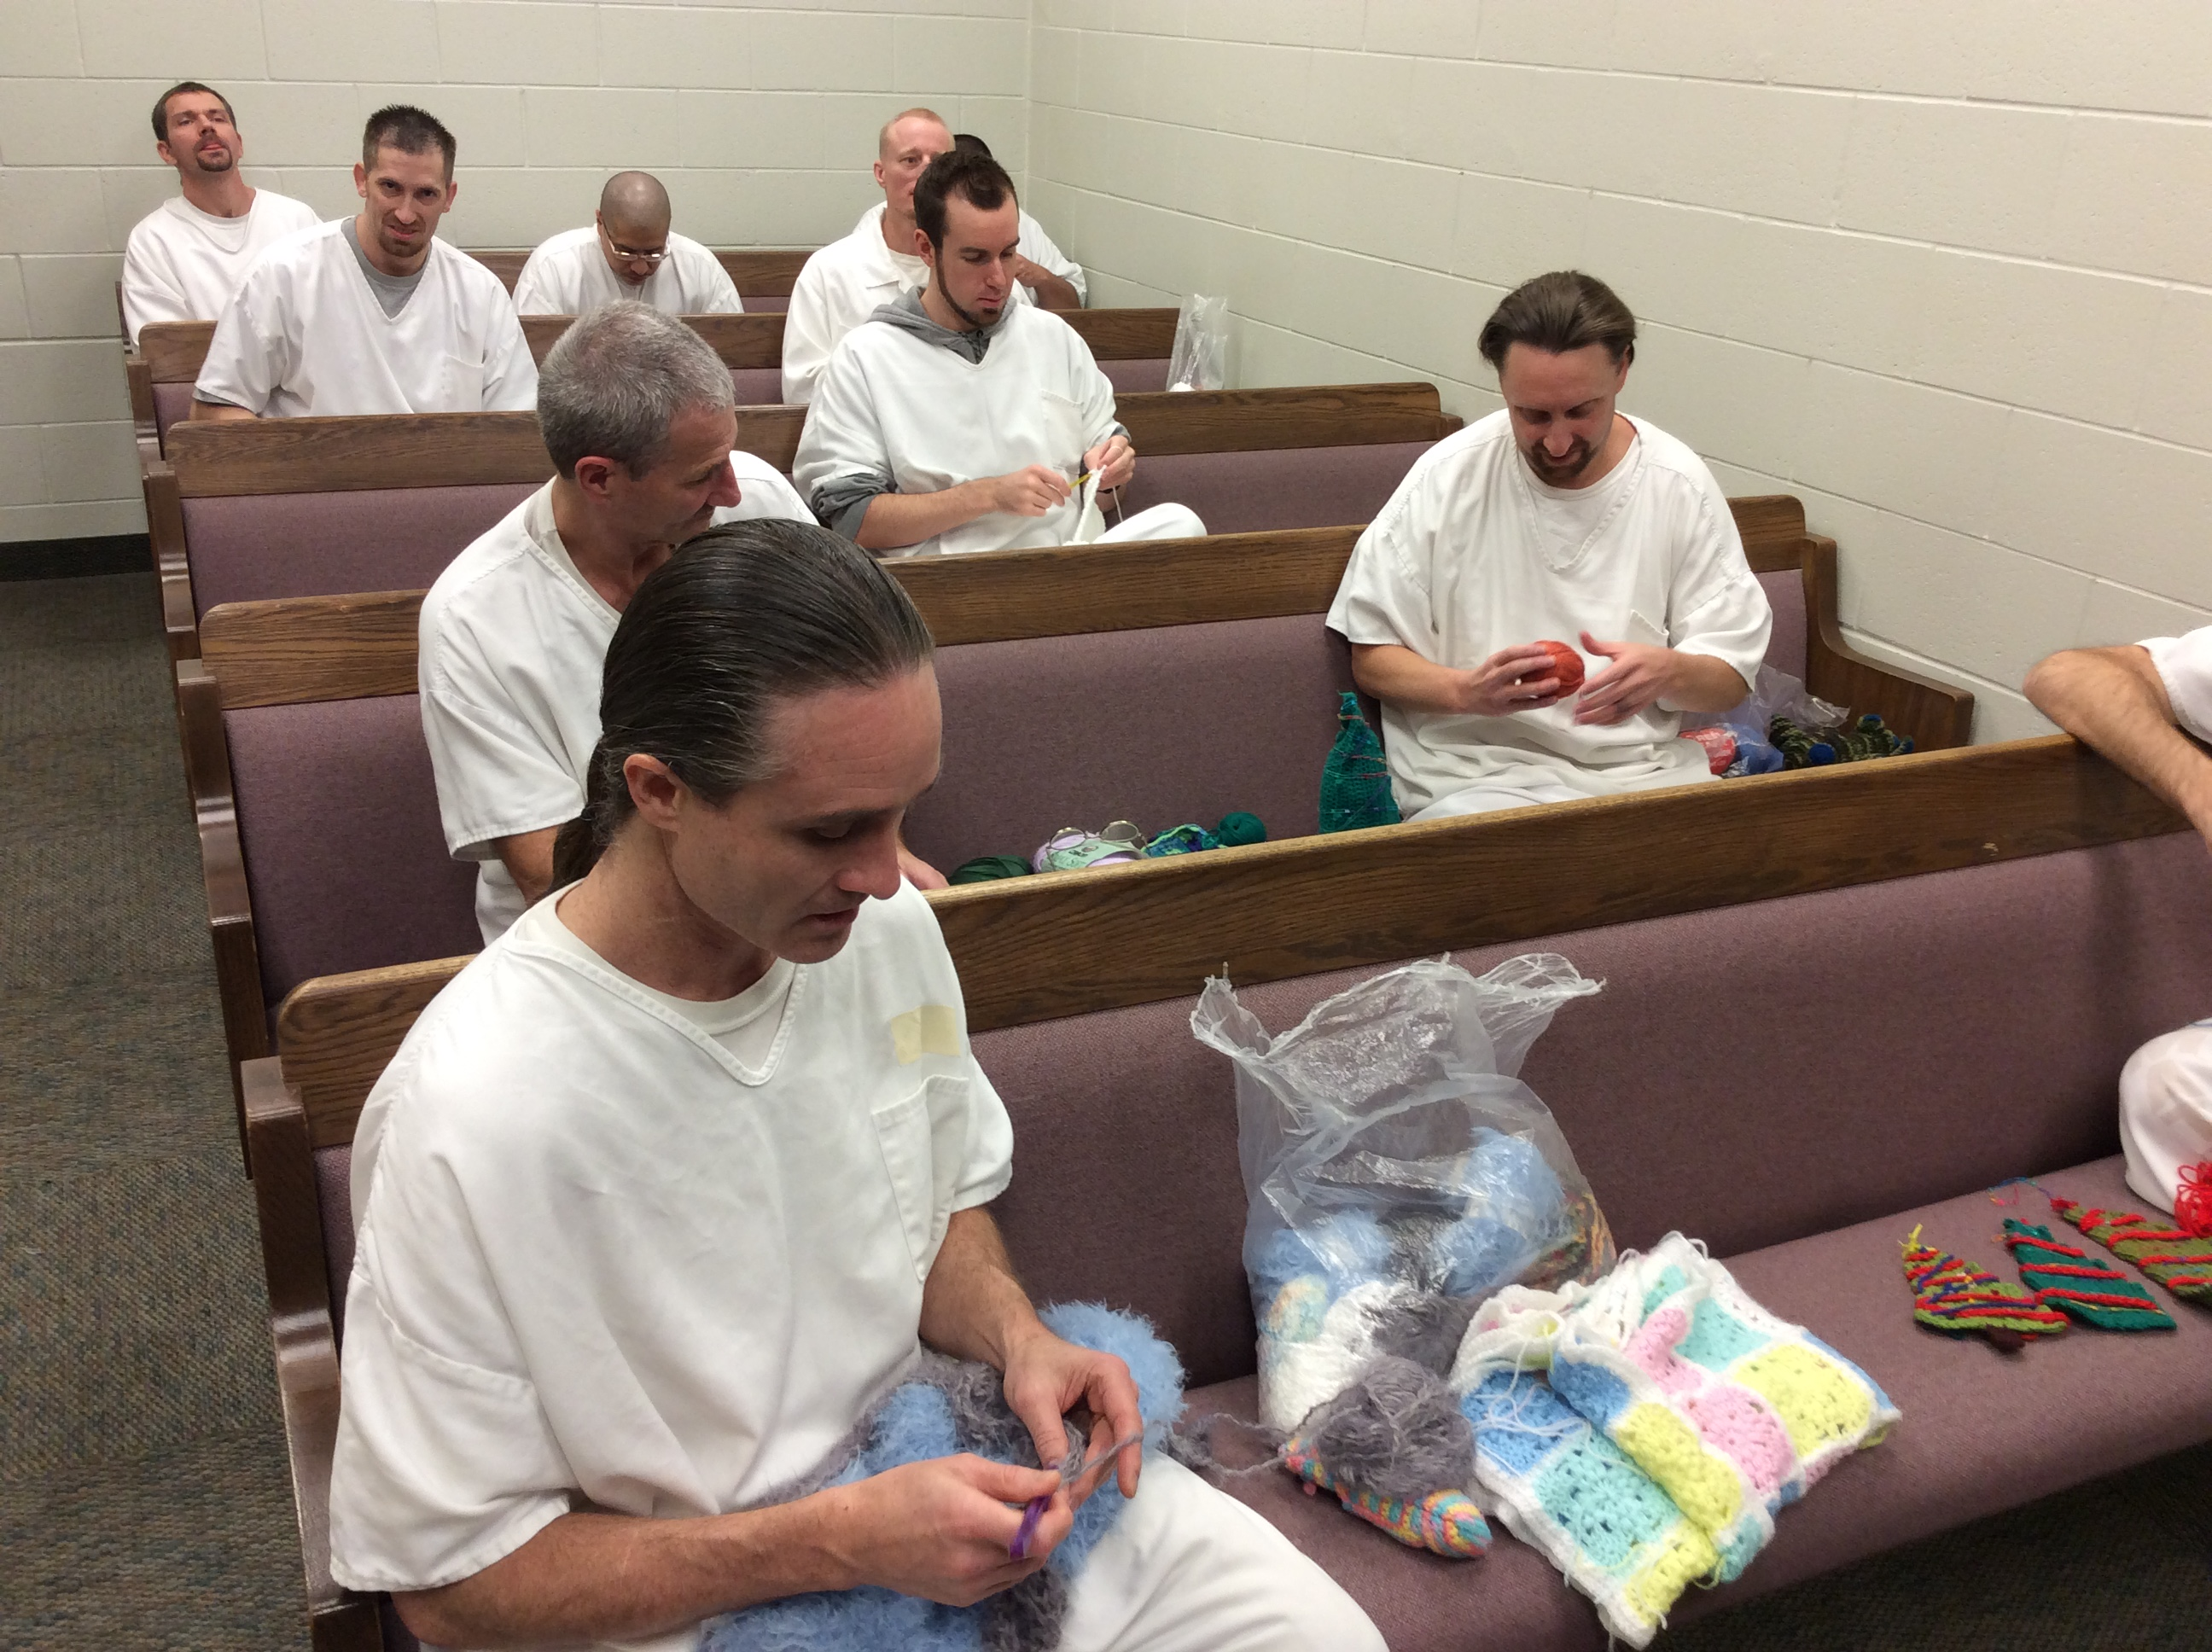 Inmates work on their crochet projects at Kane County Jail, Dec. 23, 2016 | Photo by Cami Cox Jim, St. George News